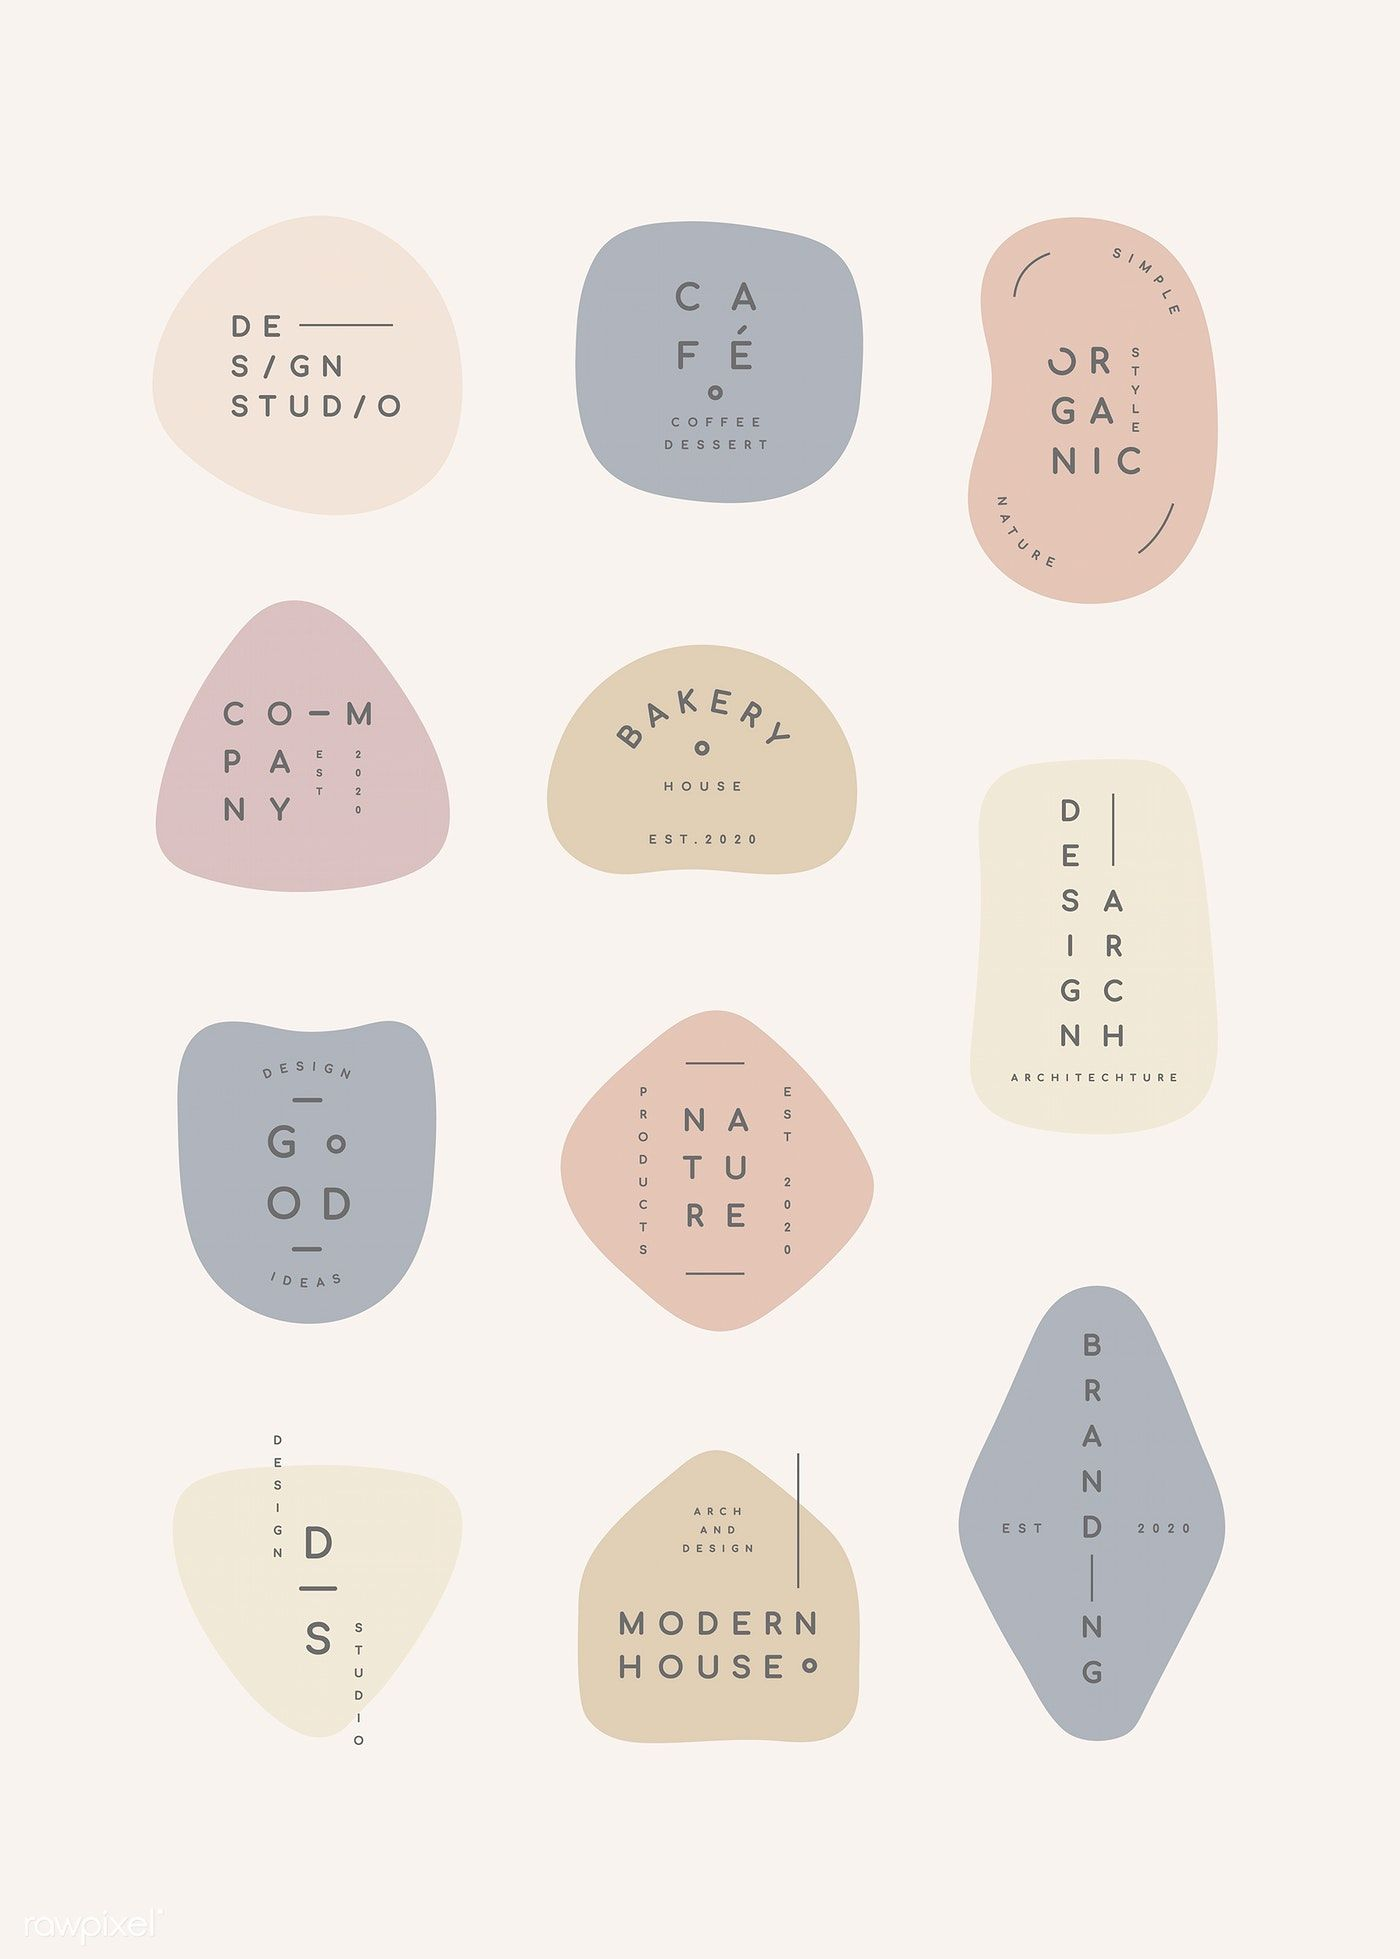 Simple pastel minimal badge collection vectors | premium image by rawpixel.com / wan